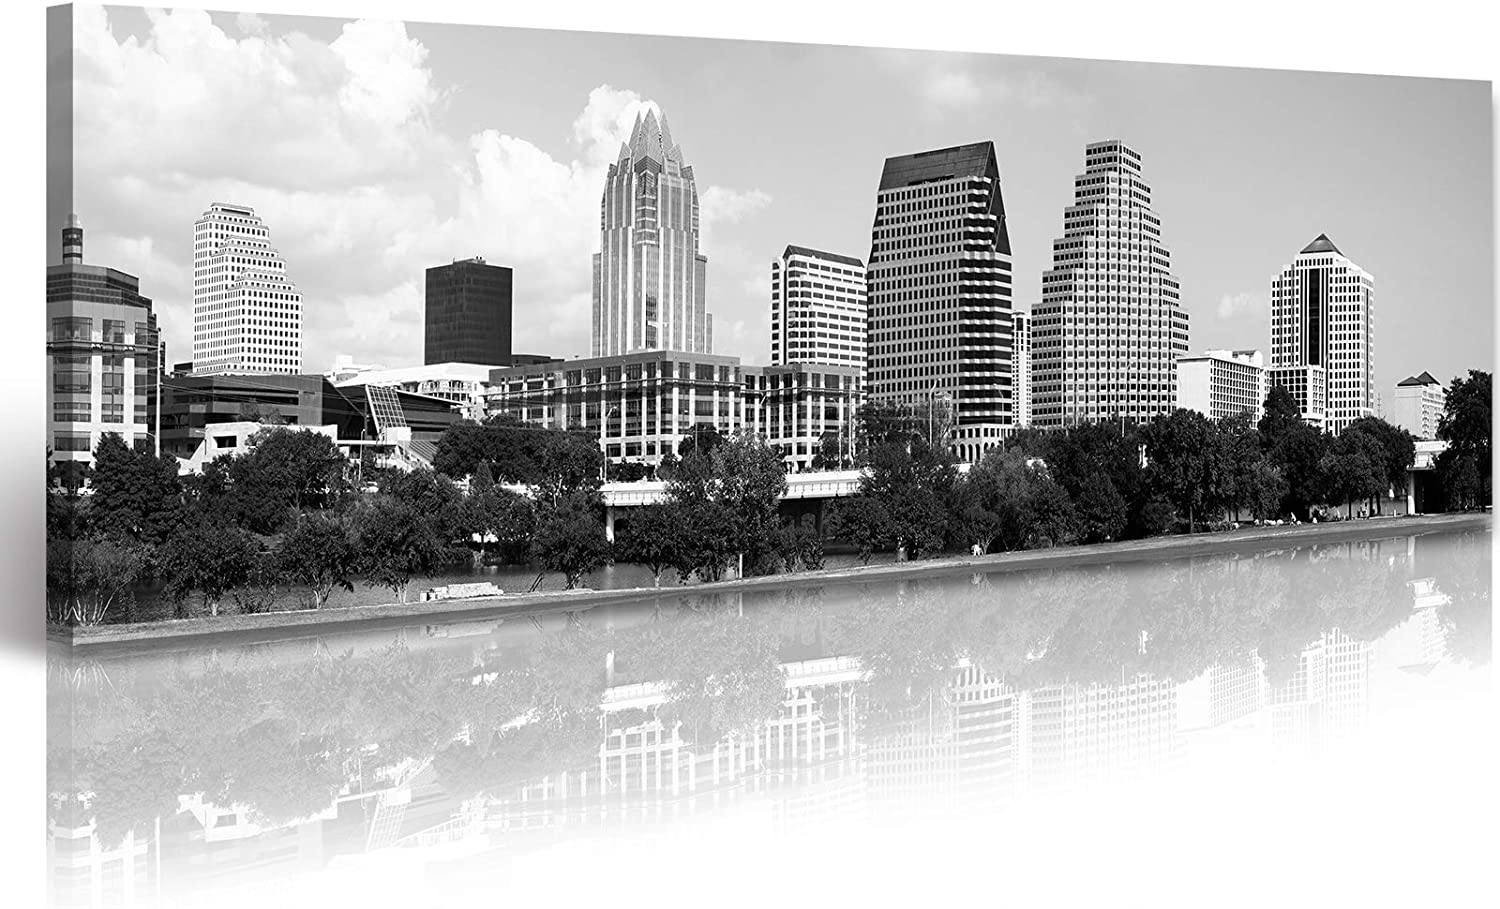 Black and White Wall Art for Living Room Canvas Prints Large City Scape Pictures for Office Decor Austin Skyline Poster Framed Painting Artwork Room Accessories Home Decorations